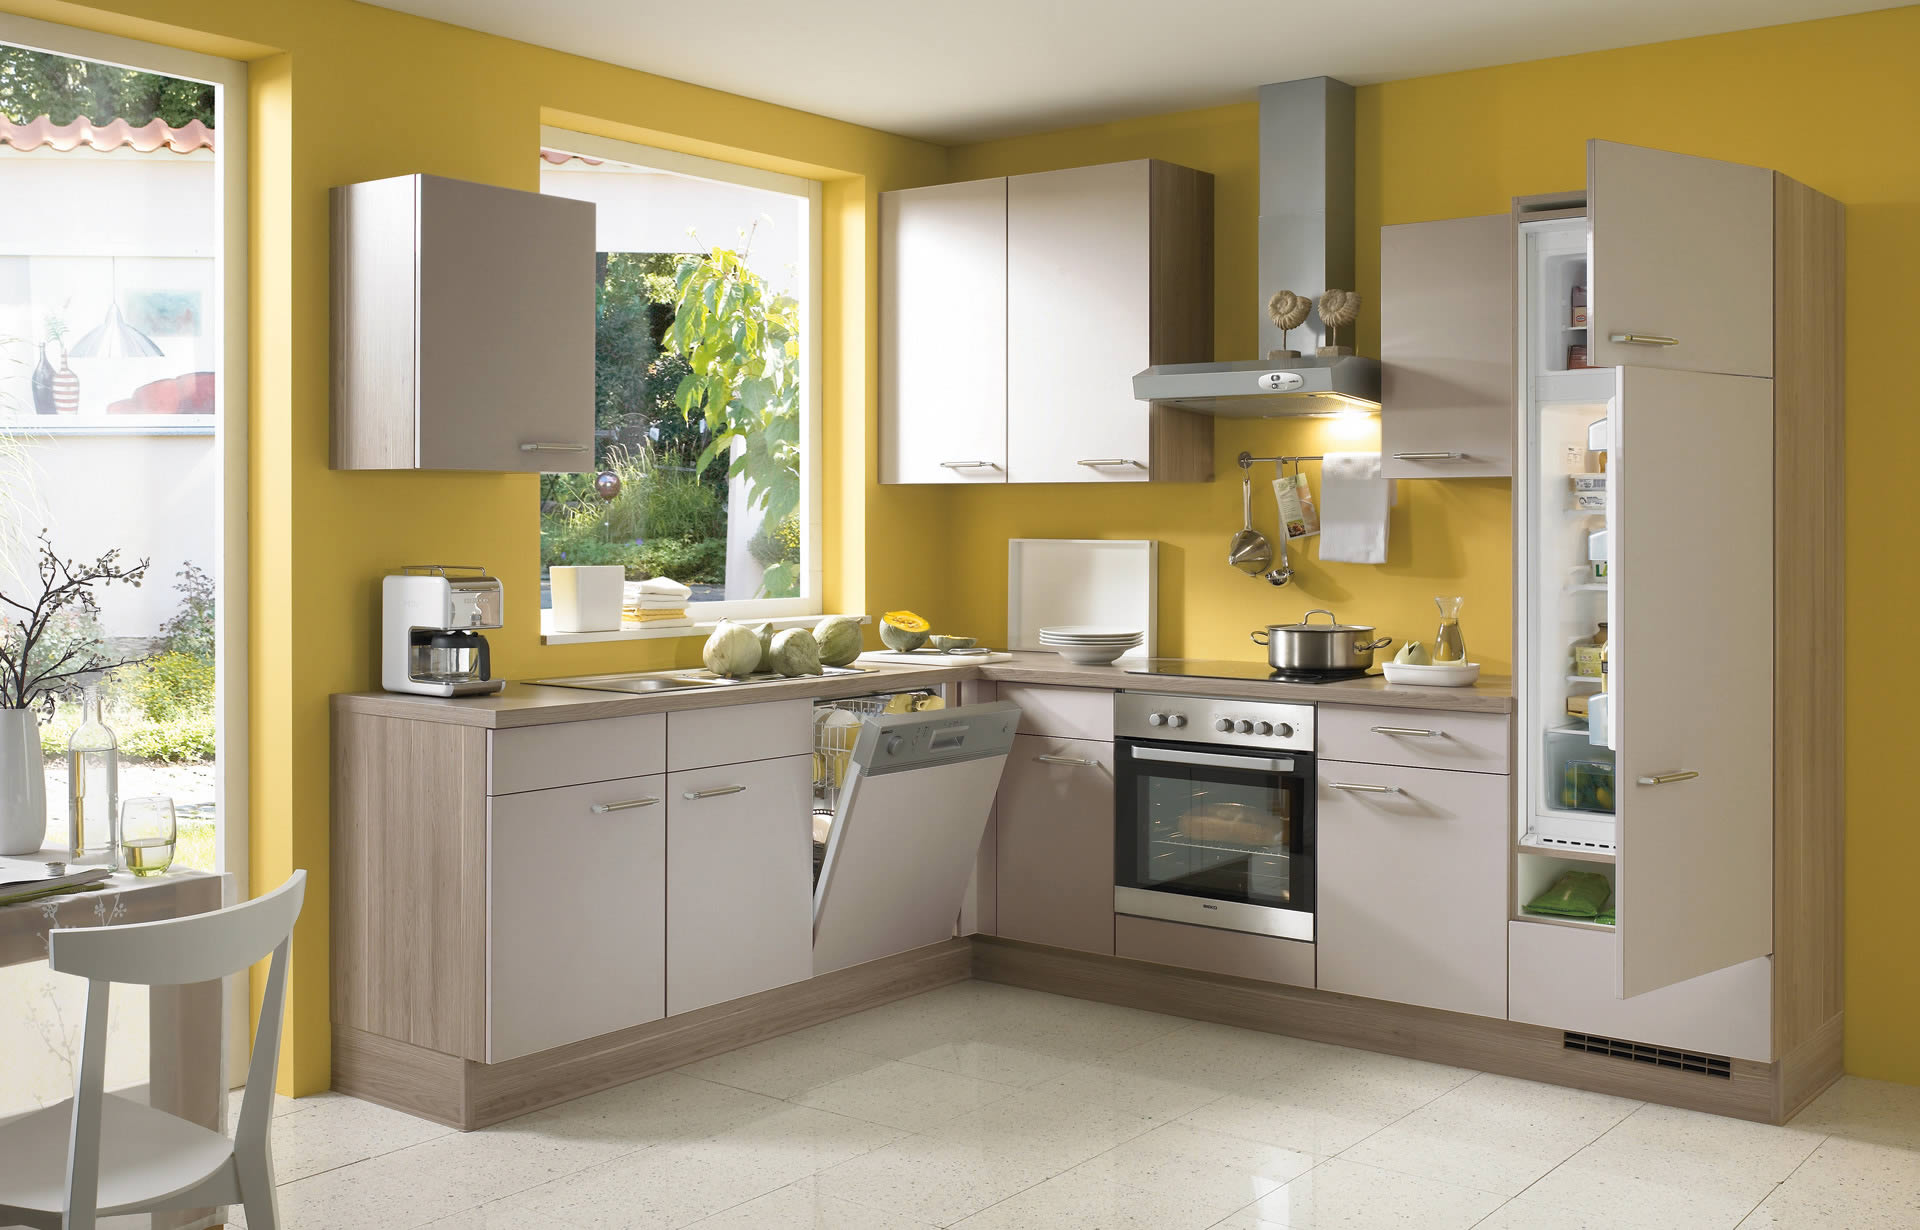 grey and yellow kitchen ideas 10 hometown kitchen designs ideas 23902